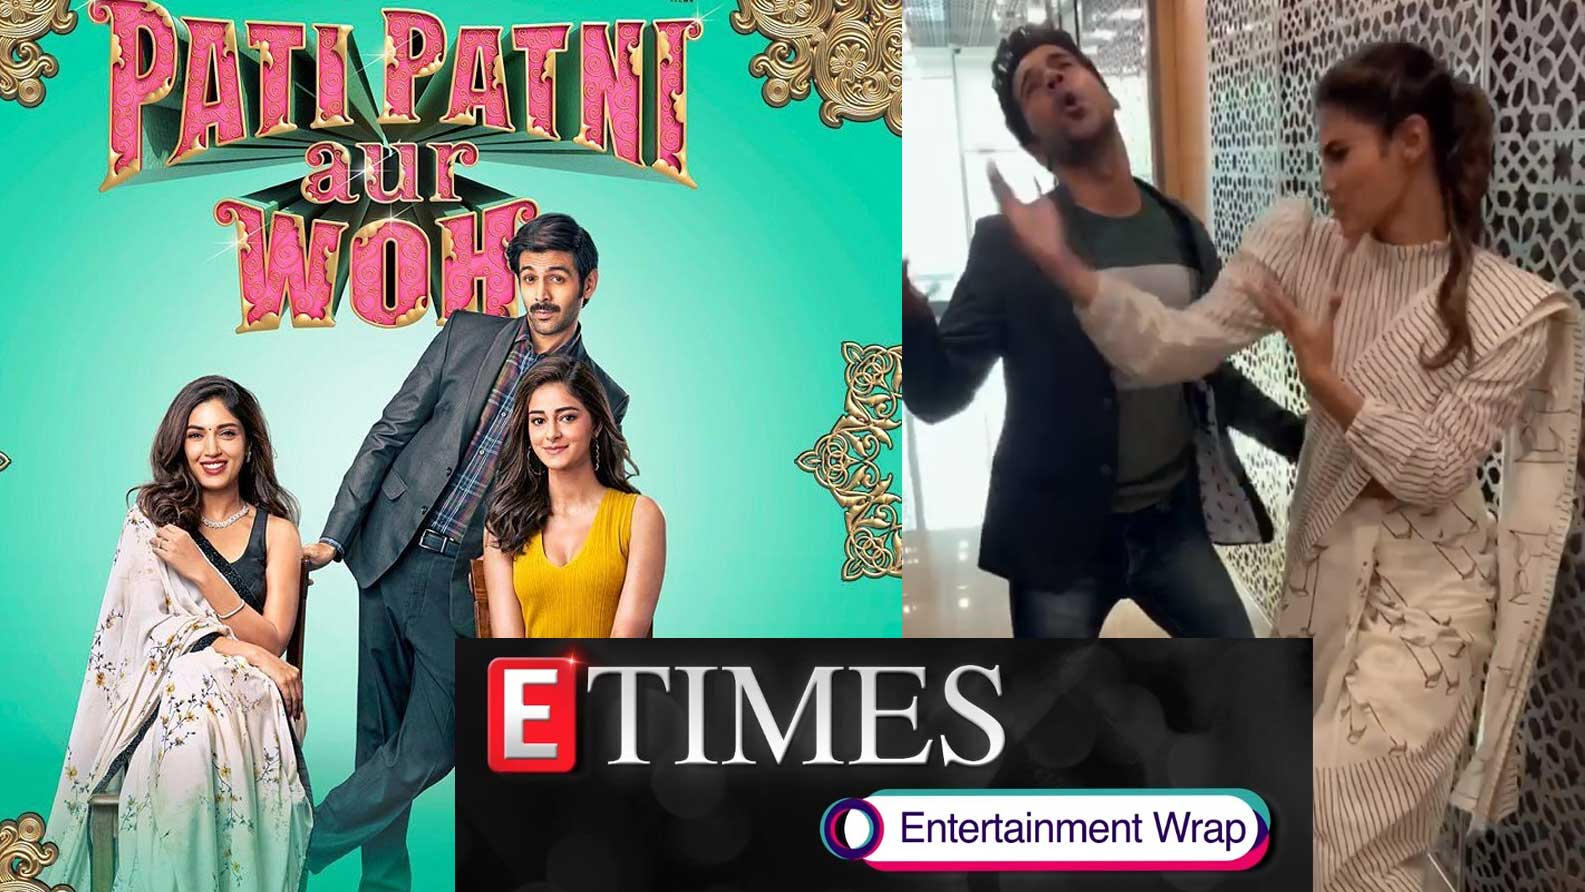 kartik-aaryan-ananya-panday-bhumi-pednekar-unveil-pati-patni-aur-woh-posters-rajkummar-raos-hilarious-video-with-mouni-roy-goes-viral-and-more